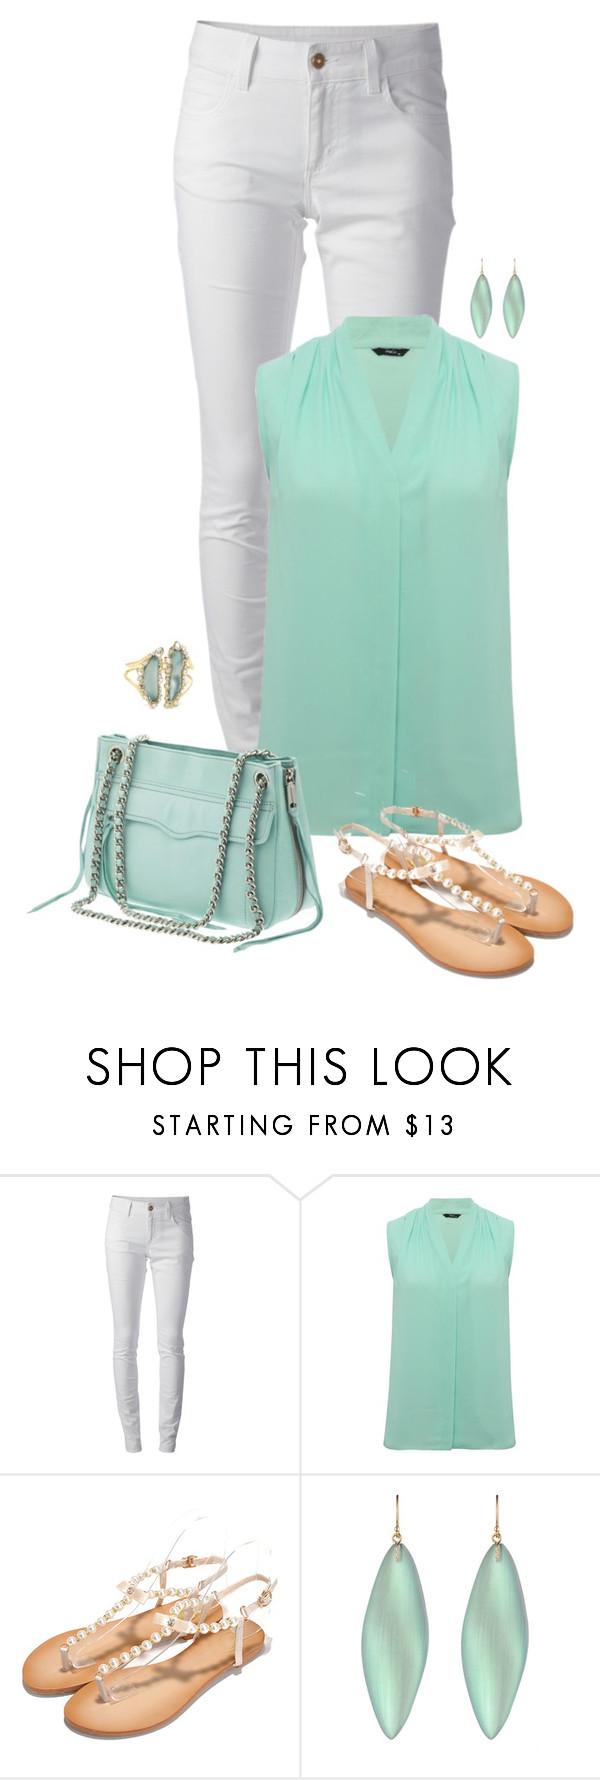 """Aqua Pura"" by seafreak83 ❤ liked on Polyvore featuring Gucci, M&Co, Rebecca Minkoff, Alexis Bittar and jeans"